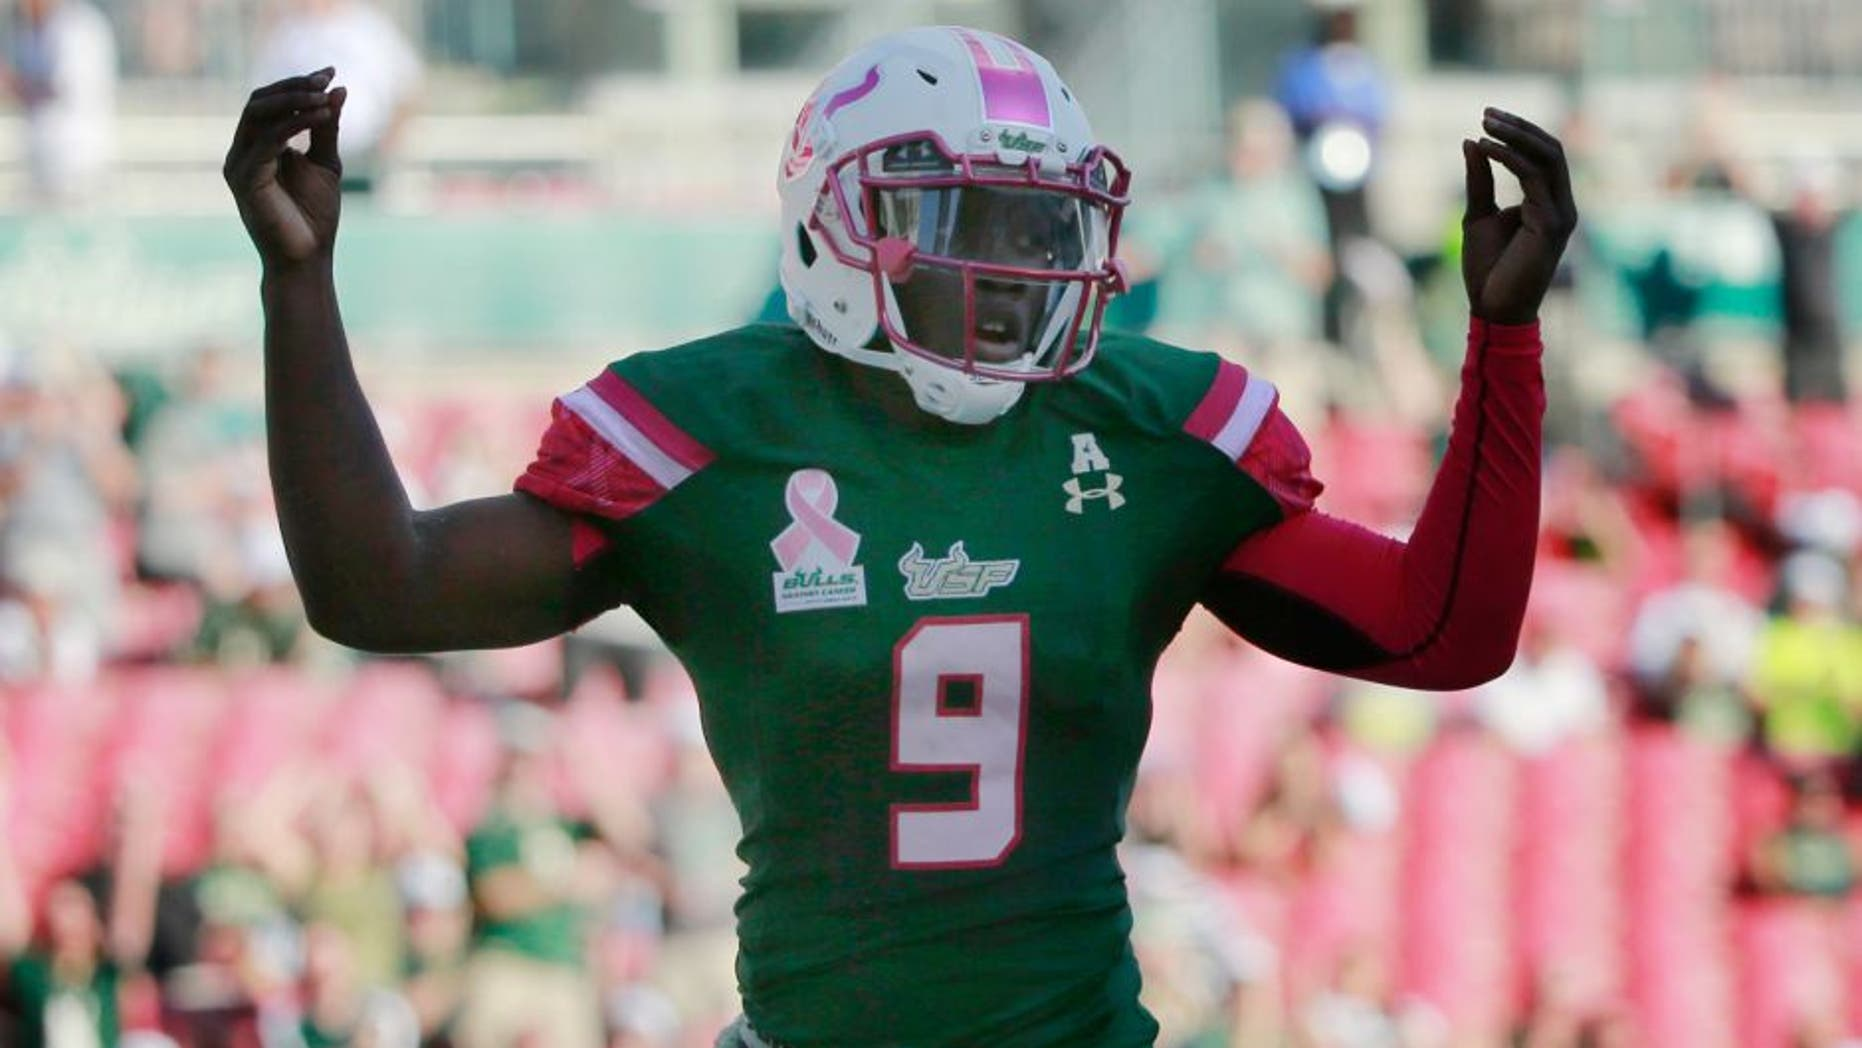 Oct 24, 2015; Tampa, FL, USA; South Florida Bulls quarterback Quinton Flowers (9) celebrates as he scores a touchdown against the Southern Methodist Mustangs during the first quarter at Raymond James Stadium. Mandatory Credit: Kim Klement-USA TODAY Sports